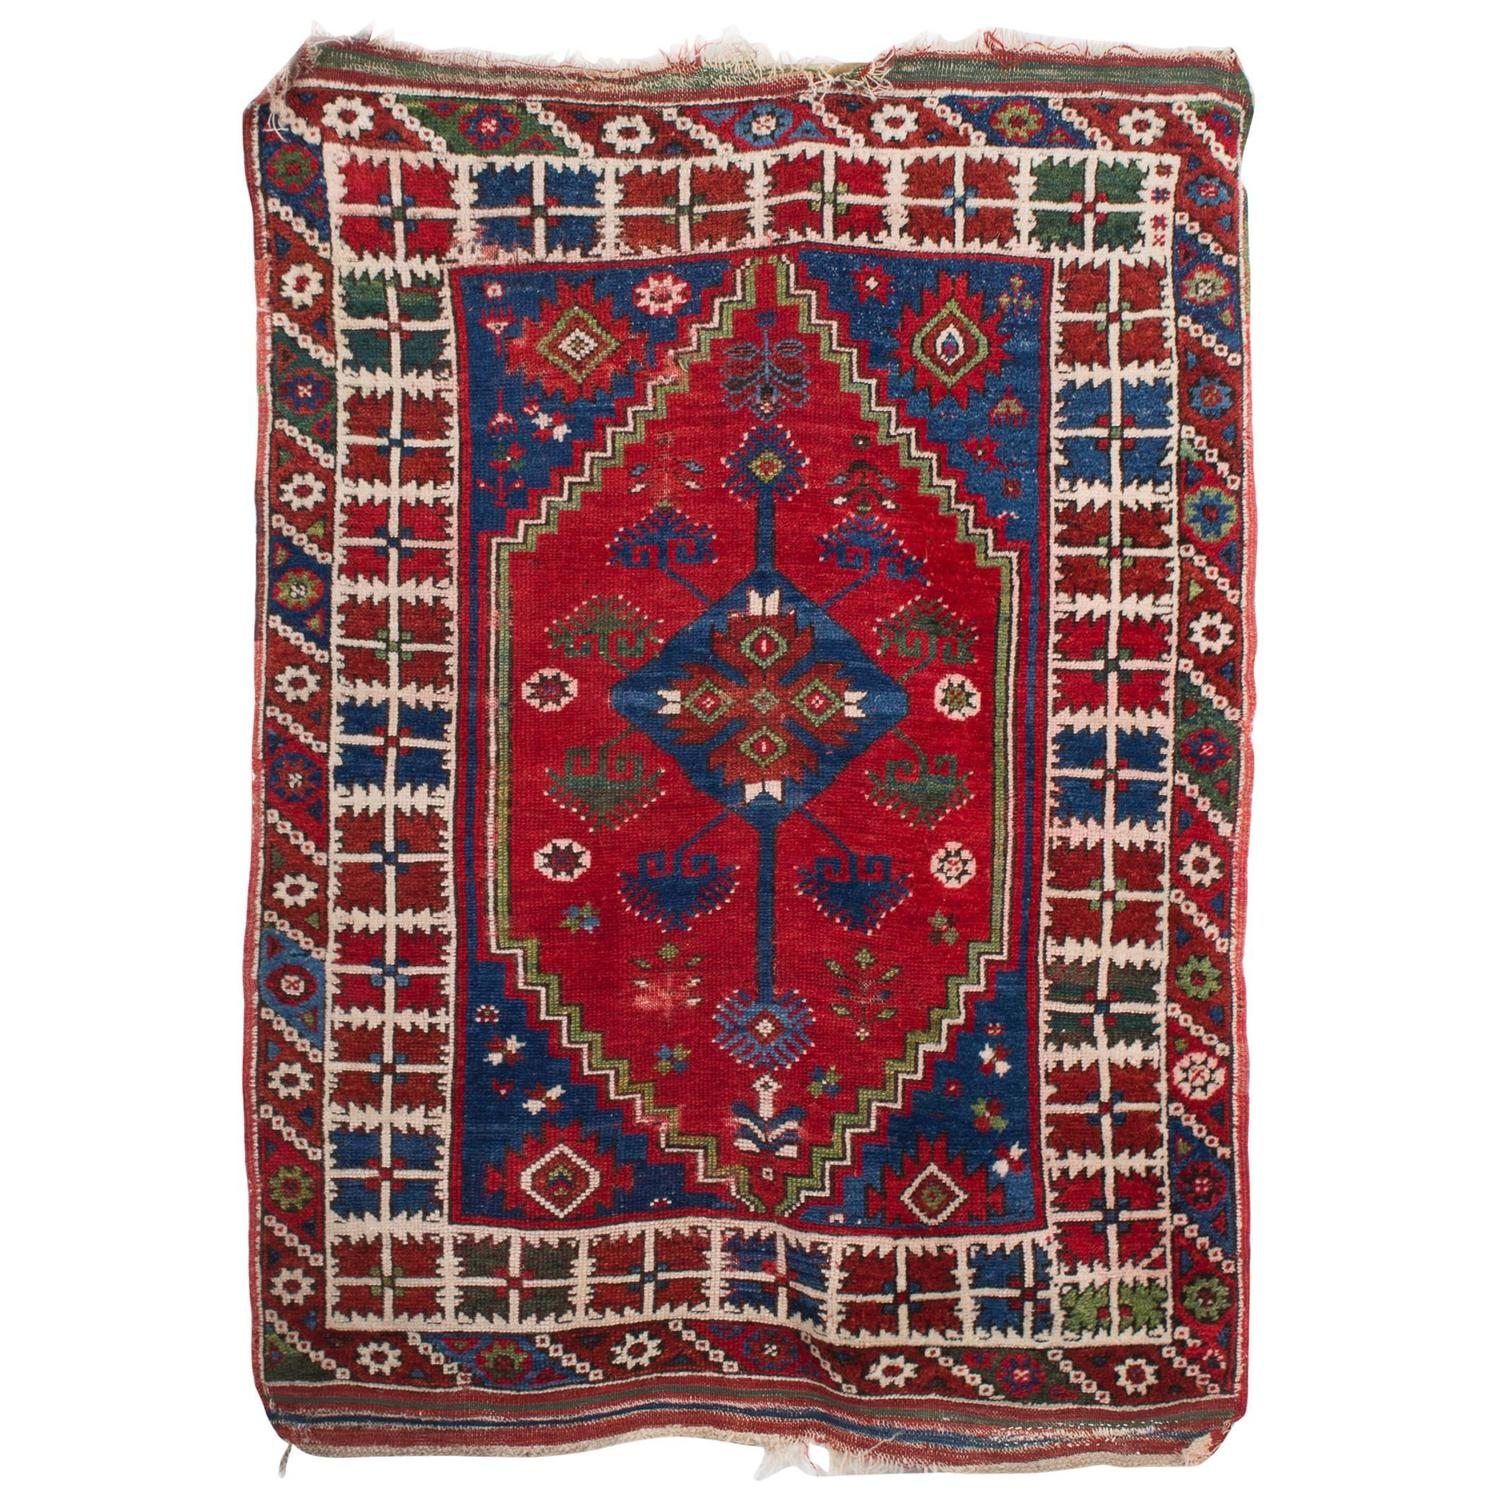 Antique West Anatolian Turkish Doesemealti Rug From The